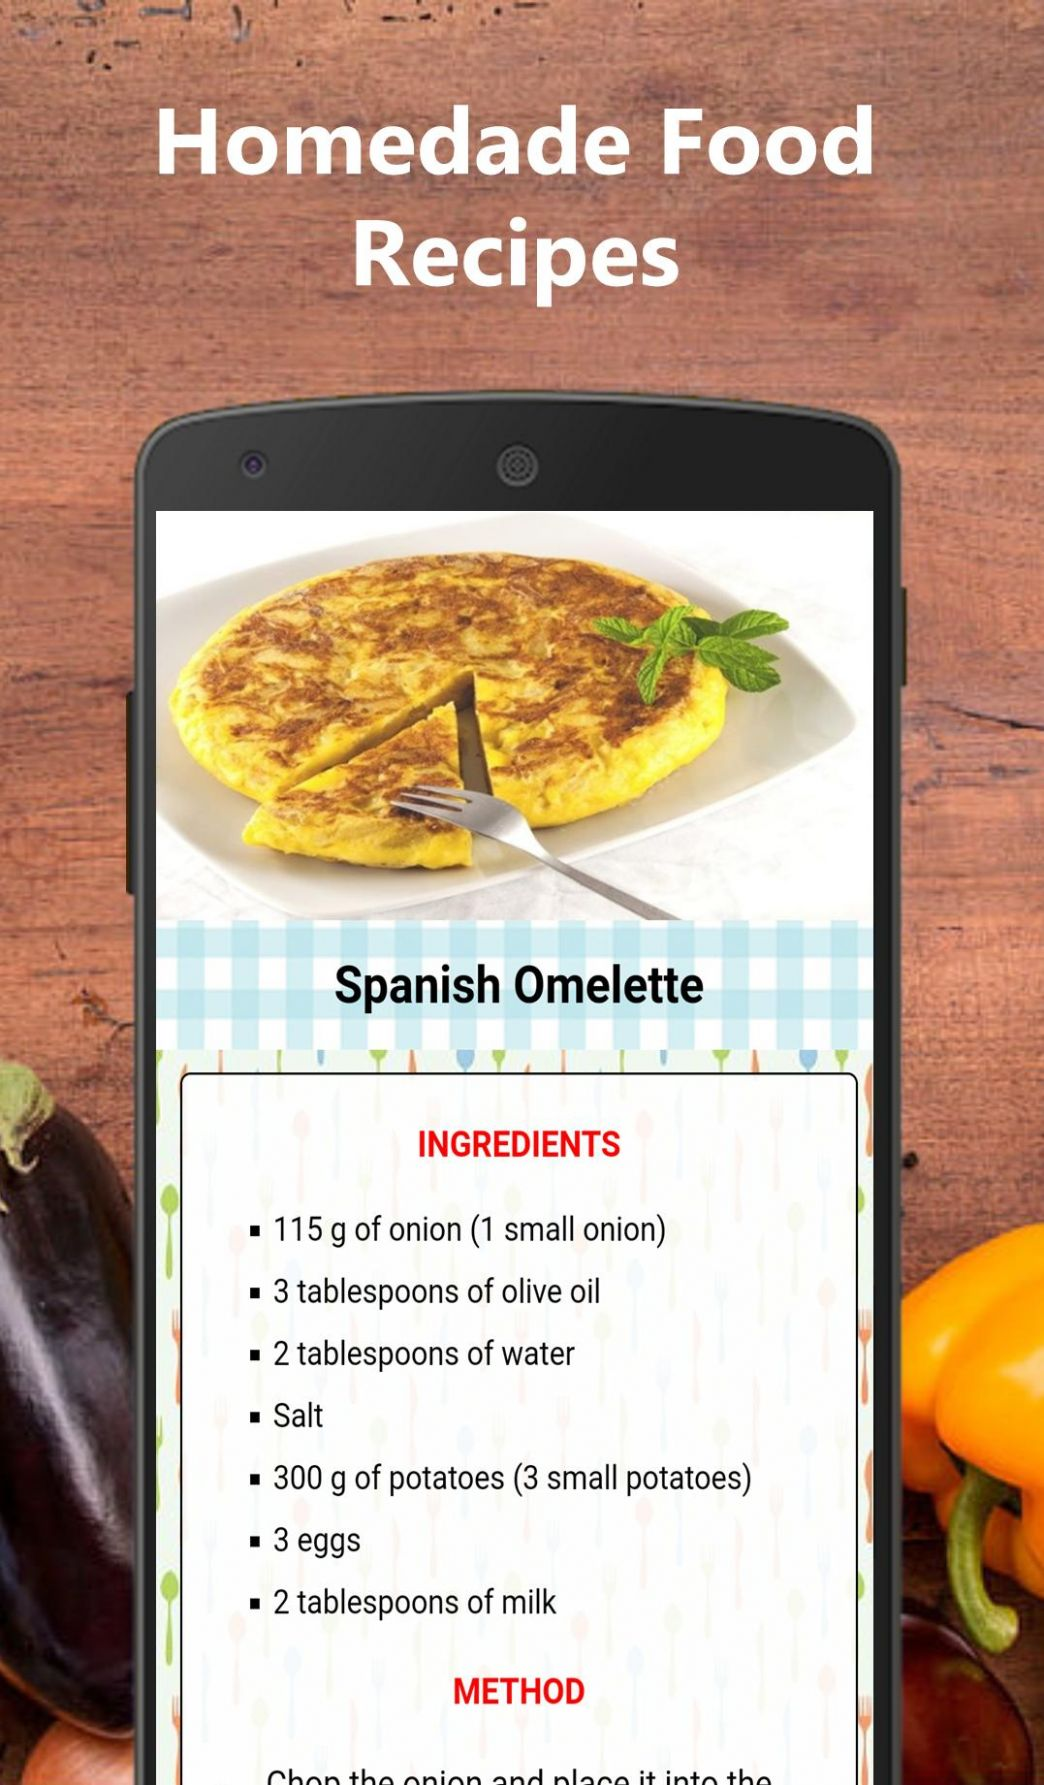 Homemade food recipes for Android - APK Download - Food Recipes Download